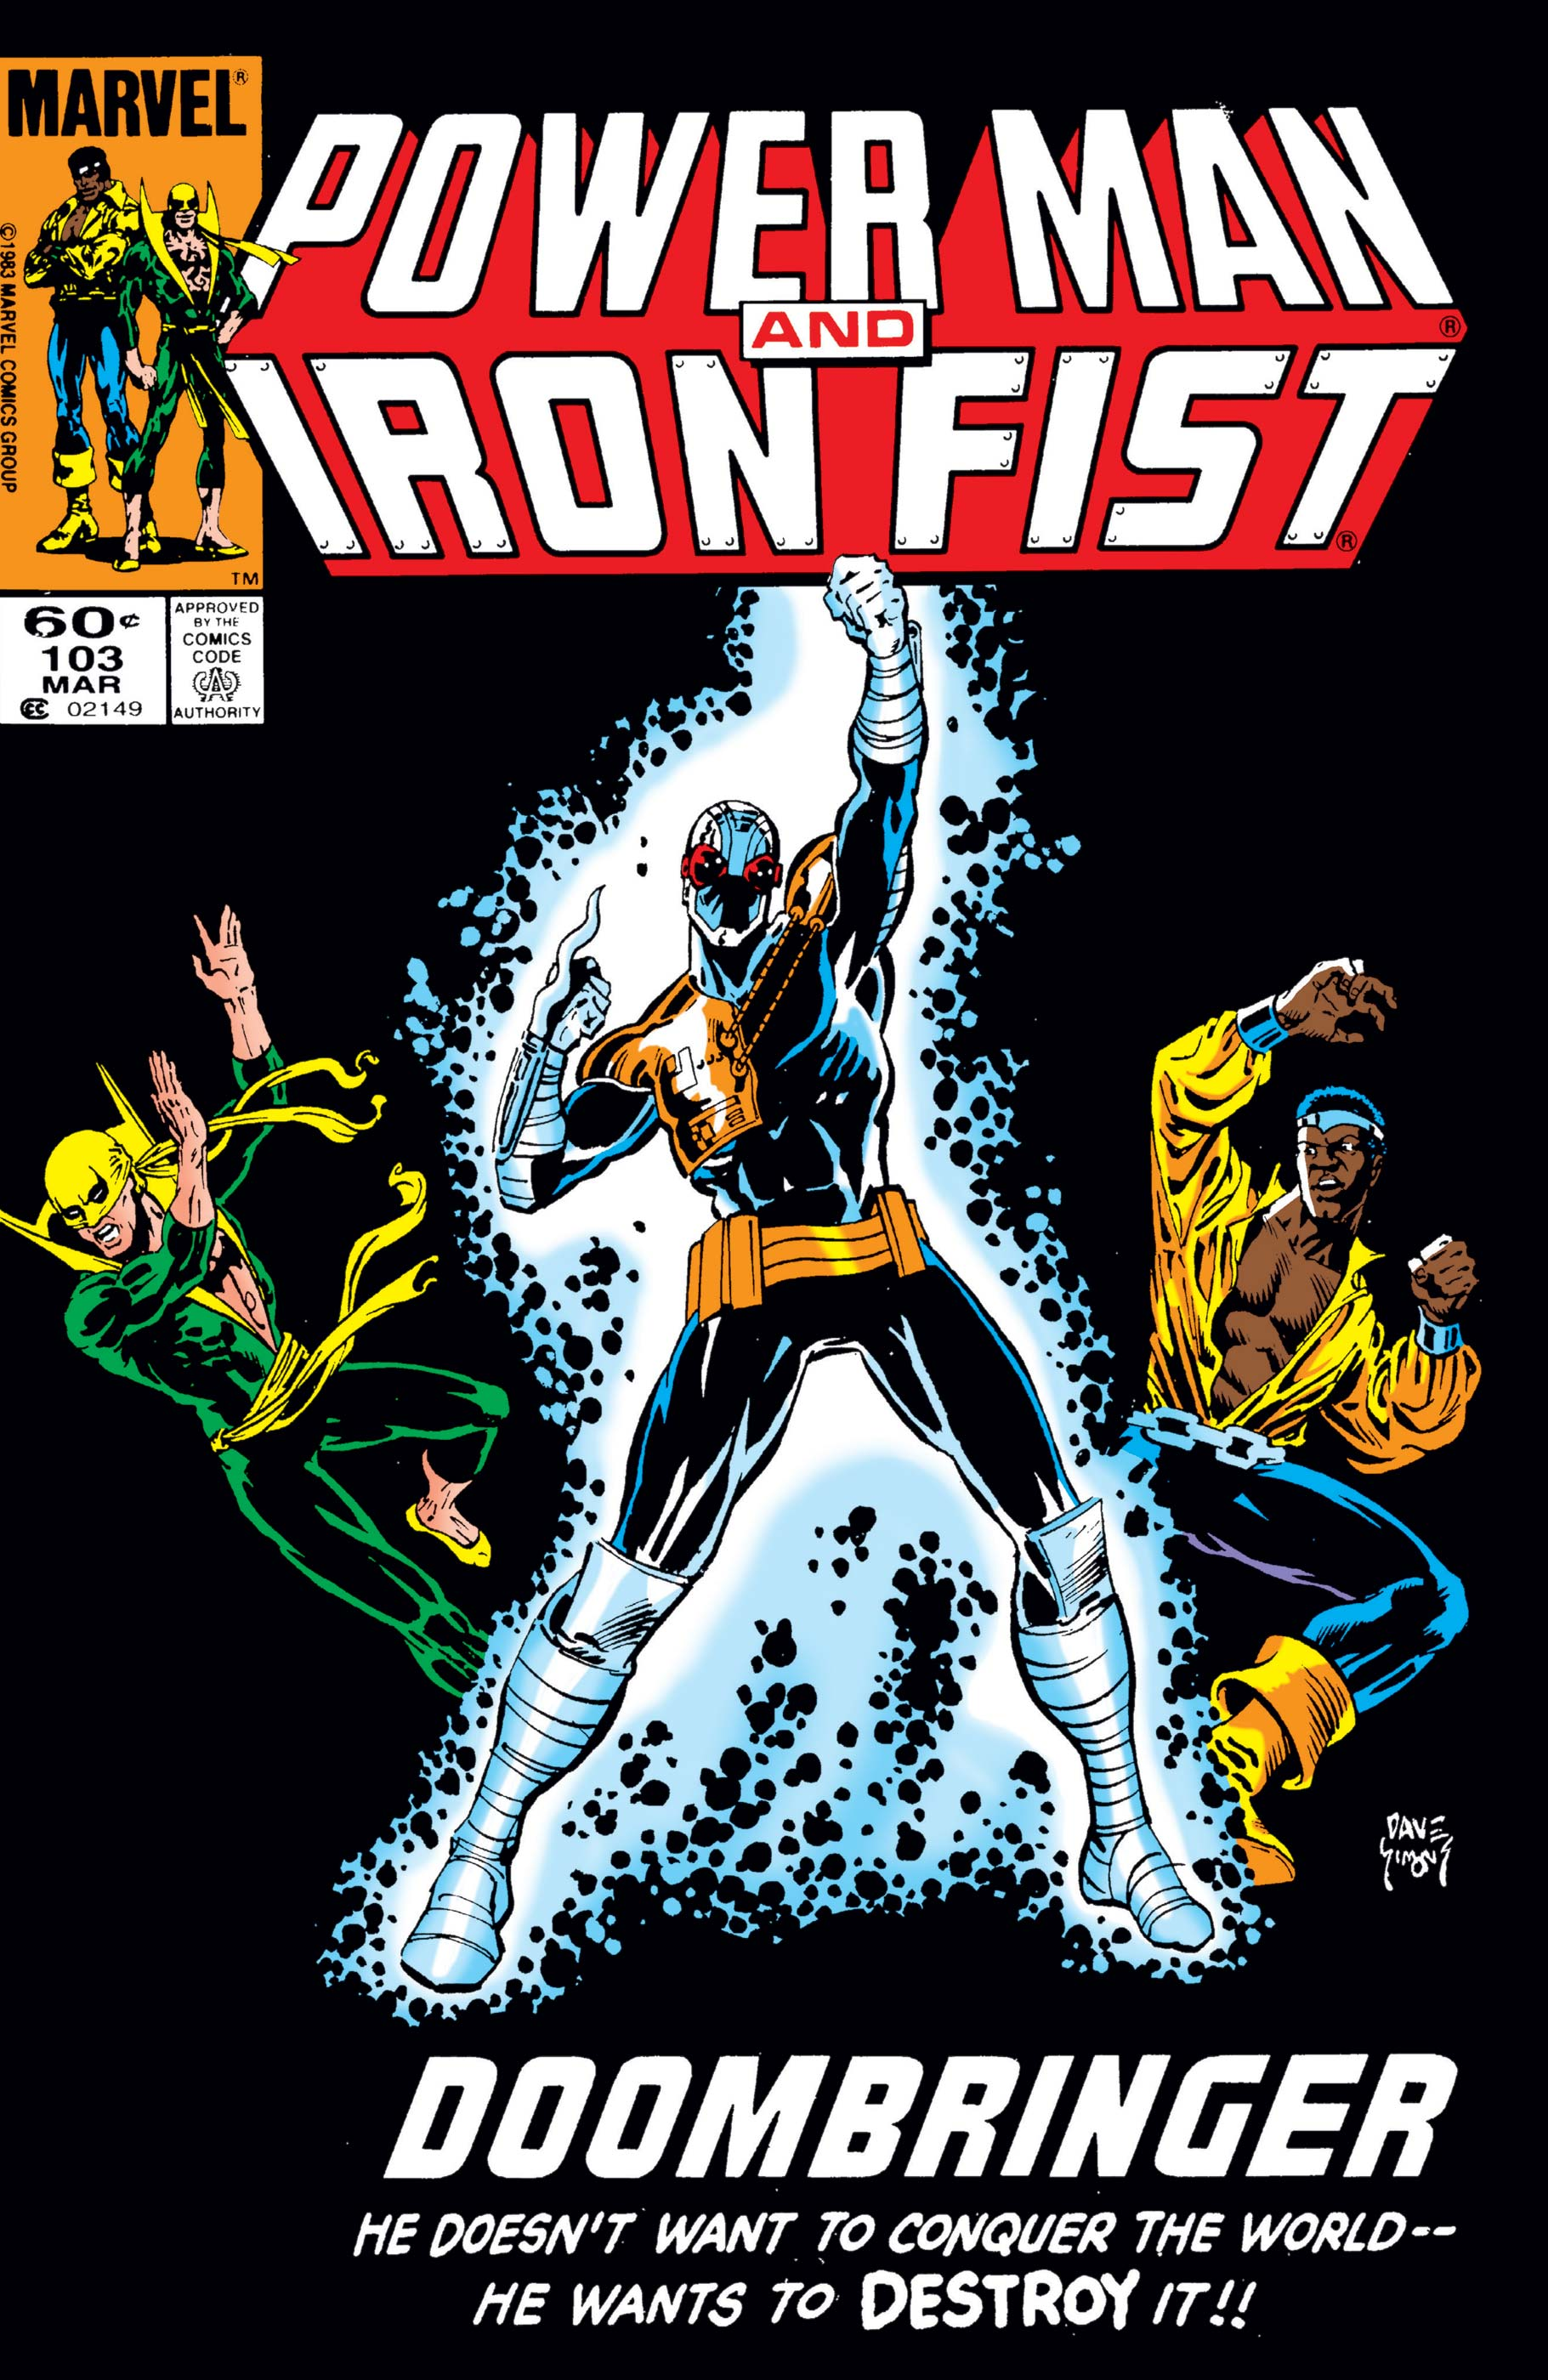 Power Man and Iron Fist (1978) #103